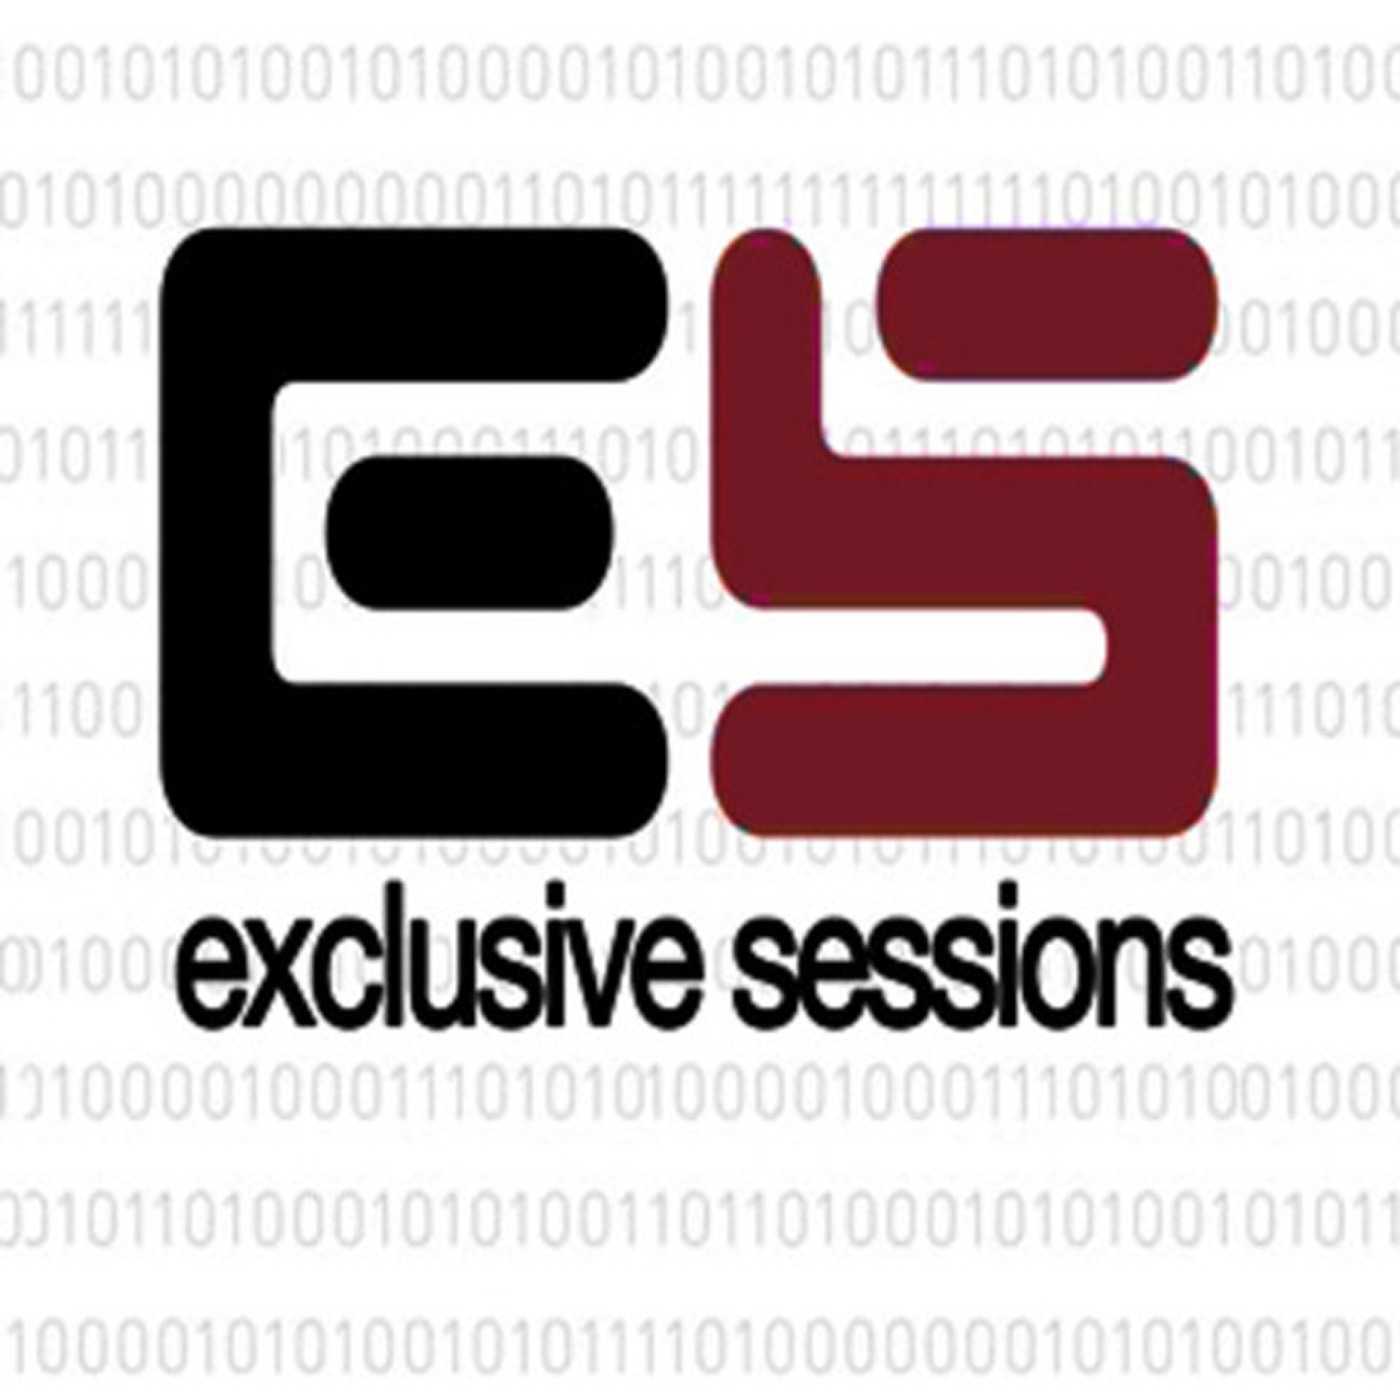 Exclusive Sessions